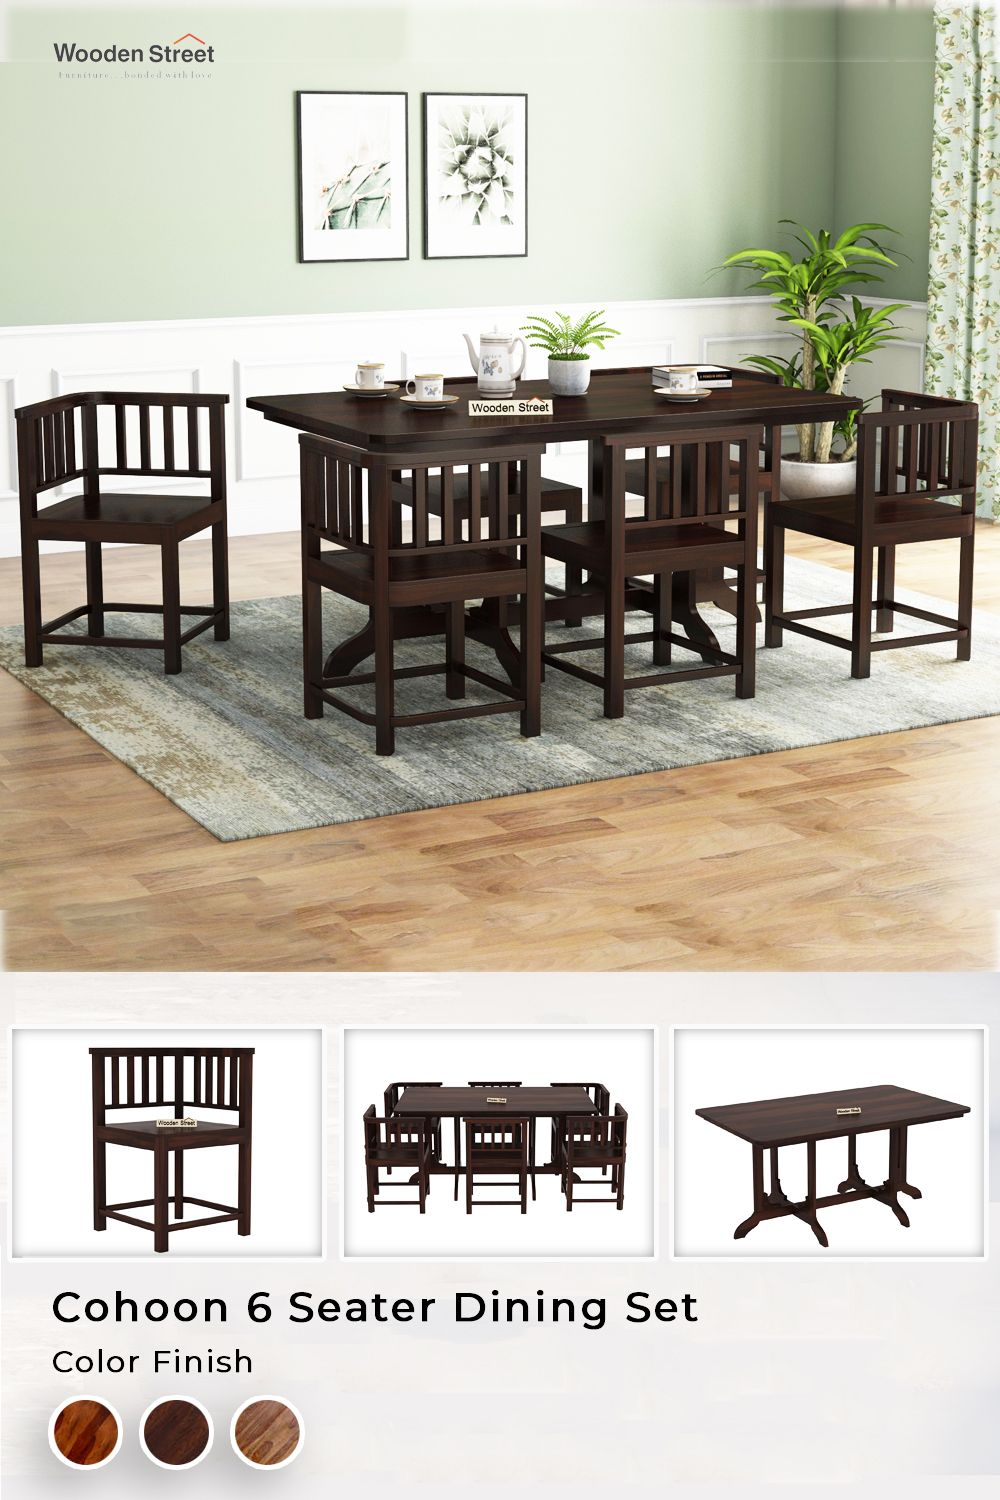 Buy Cohoon 6 Seater Dining Set Walnut Finish Online In India Wooden Street 6 Seater Dining Table Dining Table Decor Dining Room Design